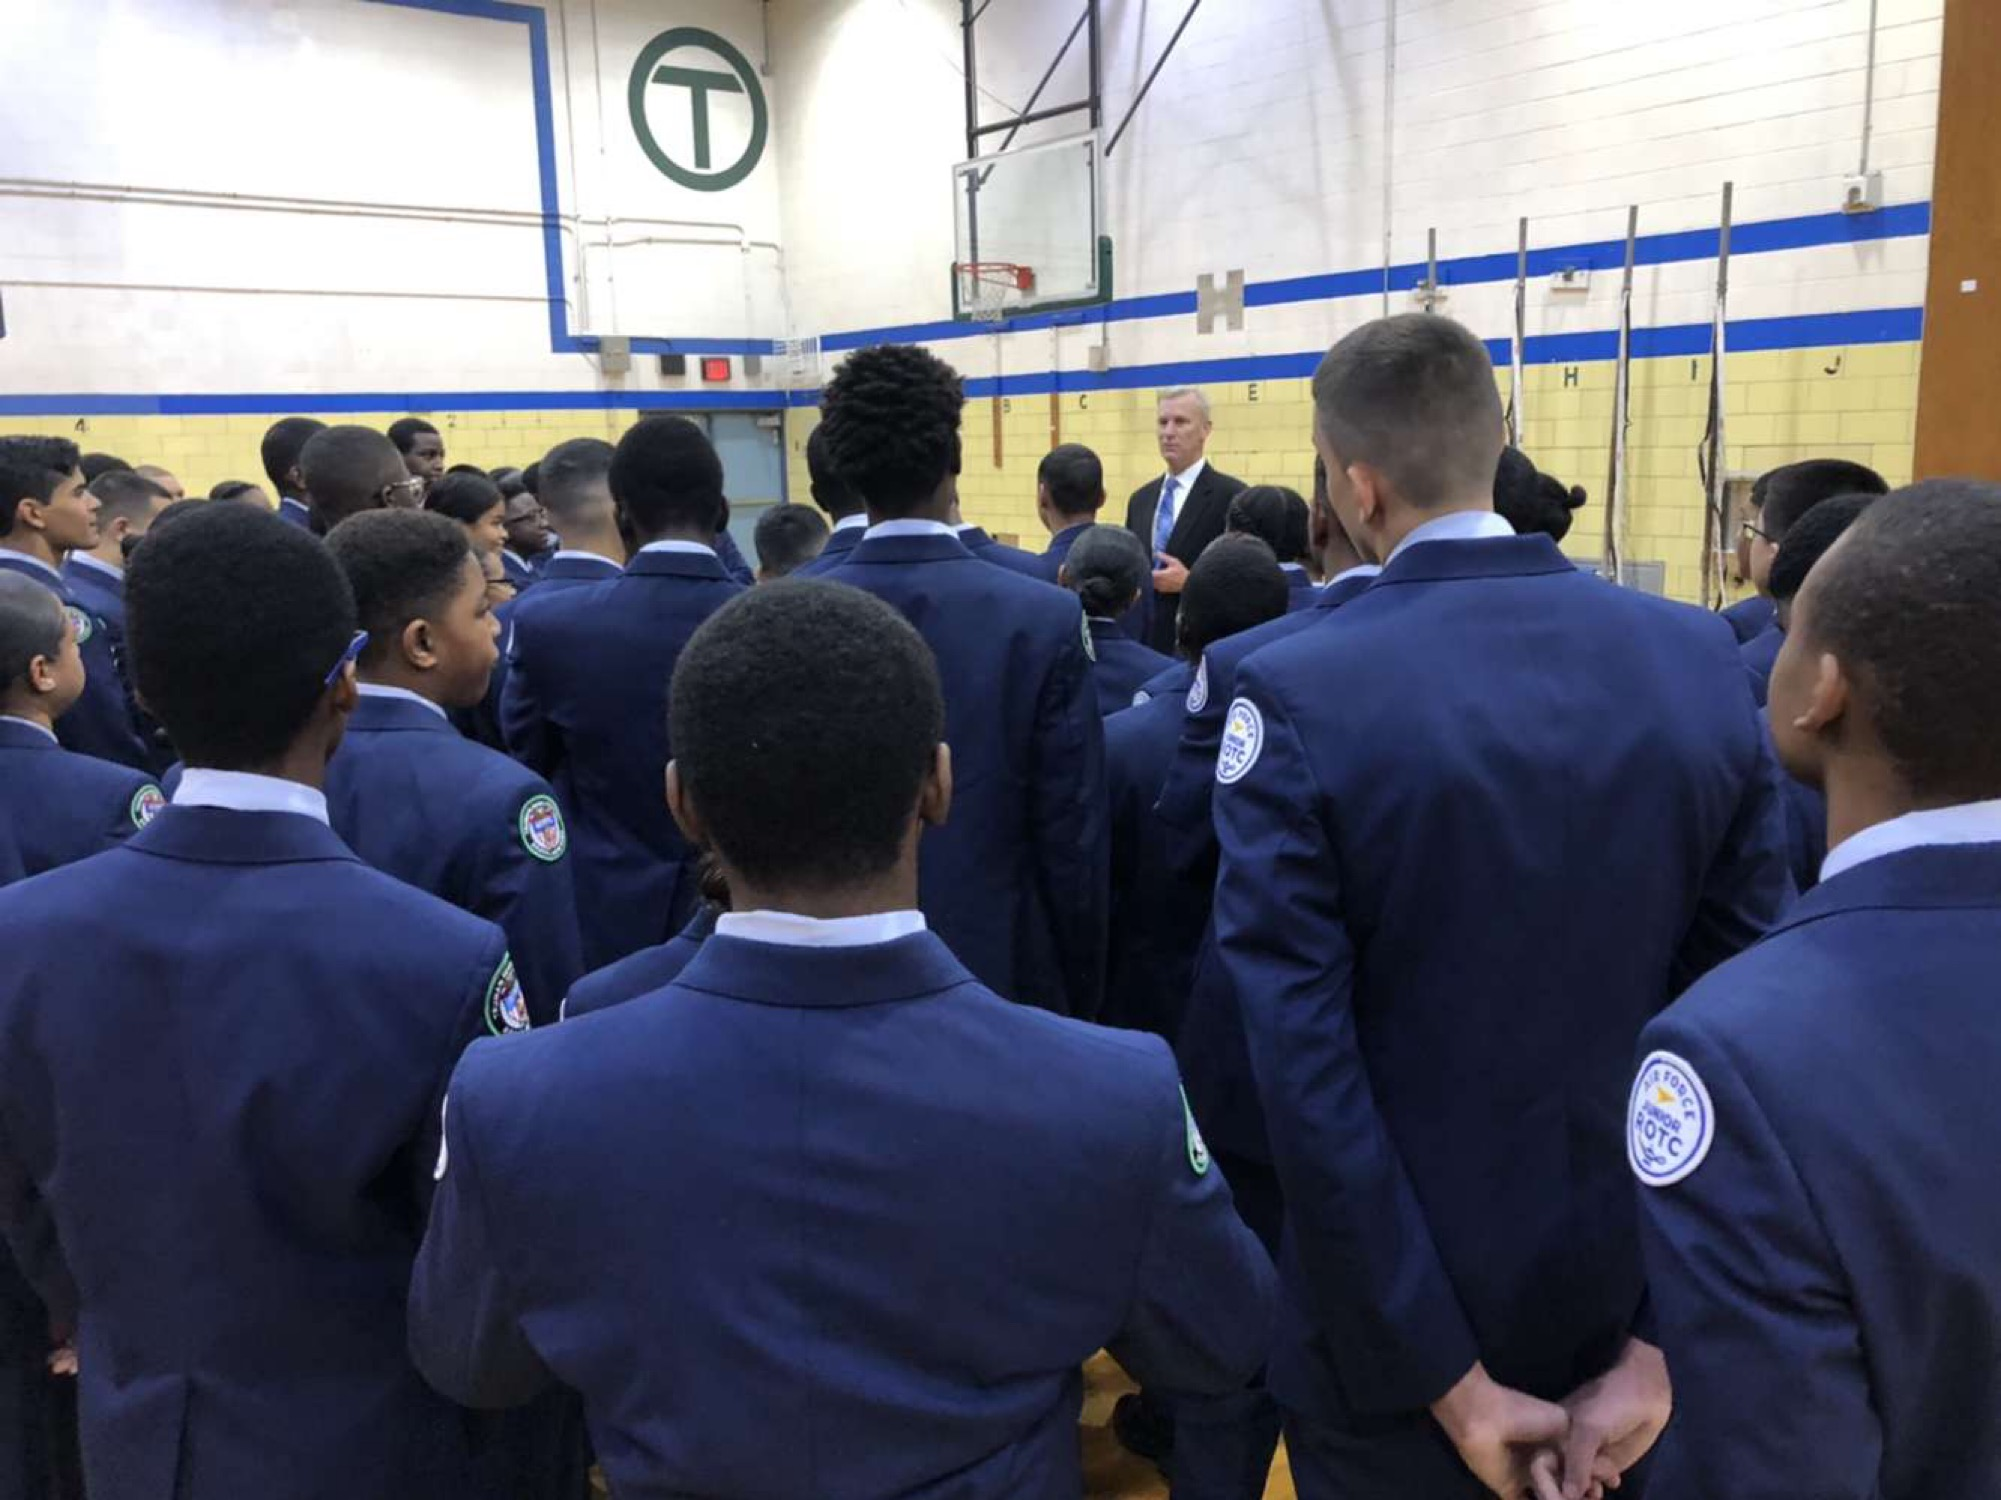 Air Force Jrotc Achieves Top Honors Harry S Truman High